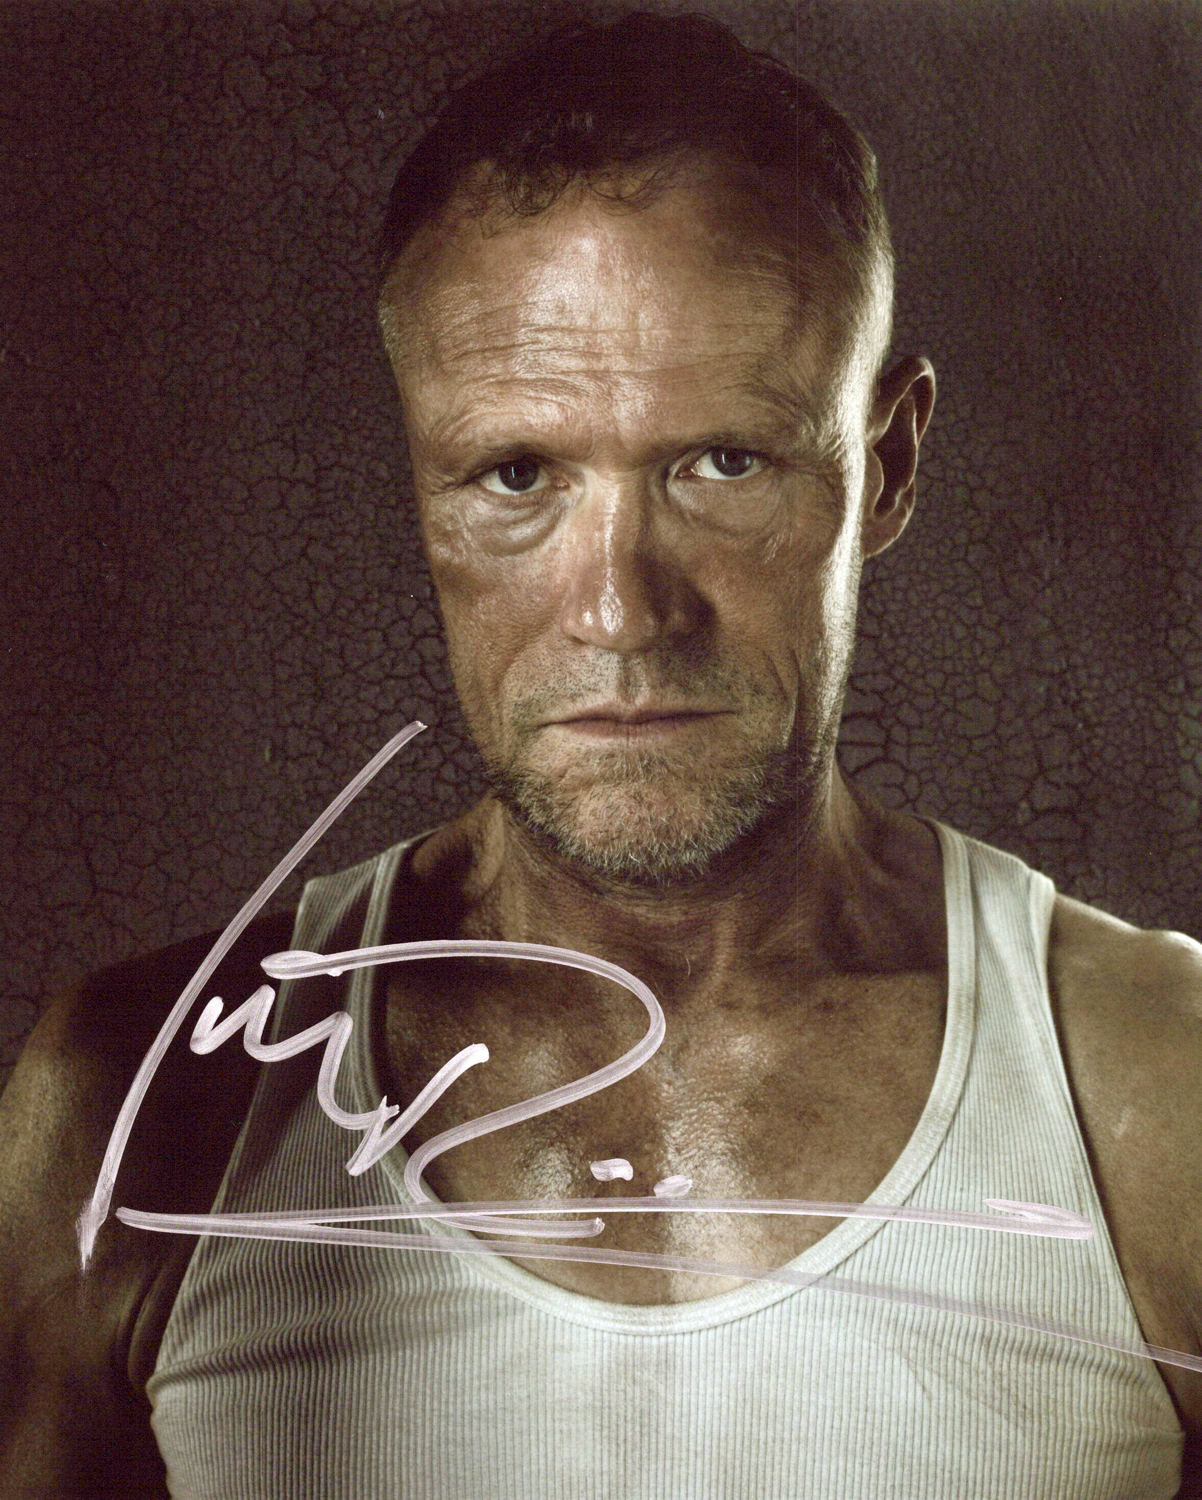 Michael Rooker Original Autogramm auf Foto 20x25cm - The Walking Dead